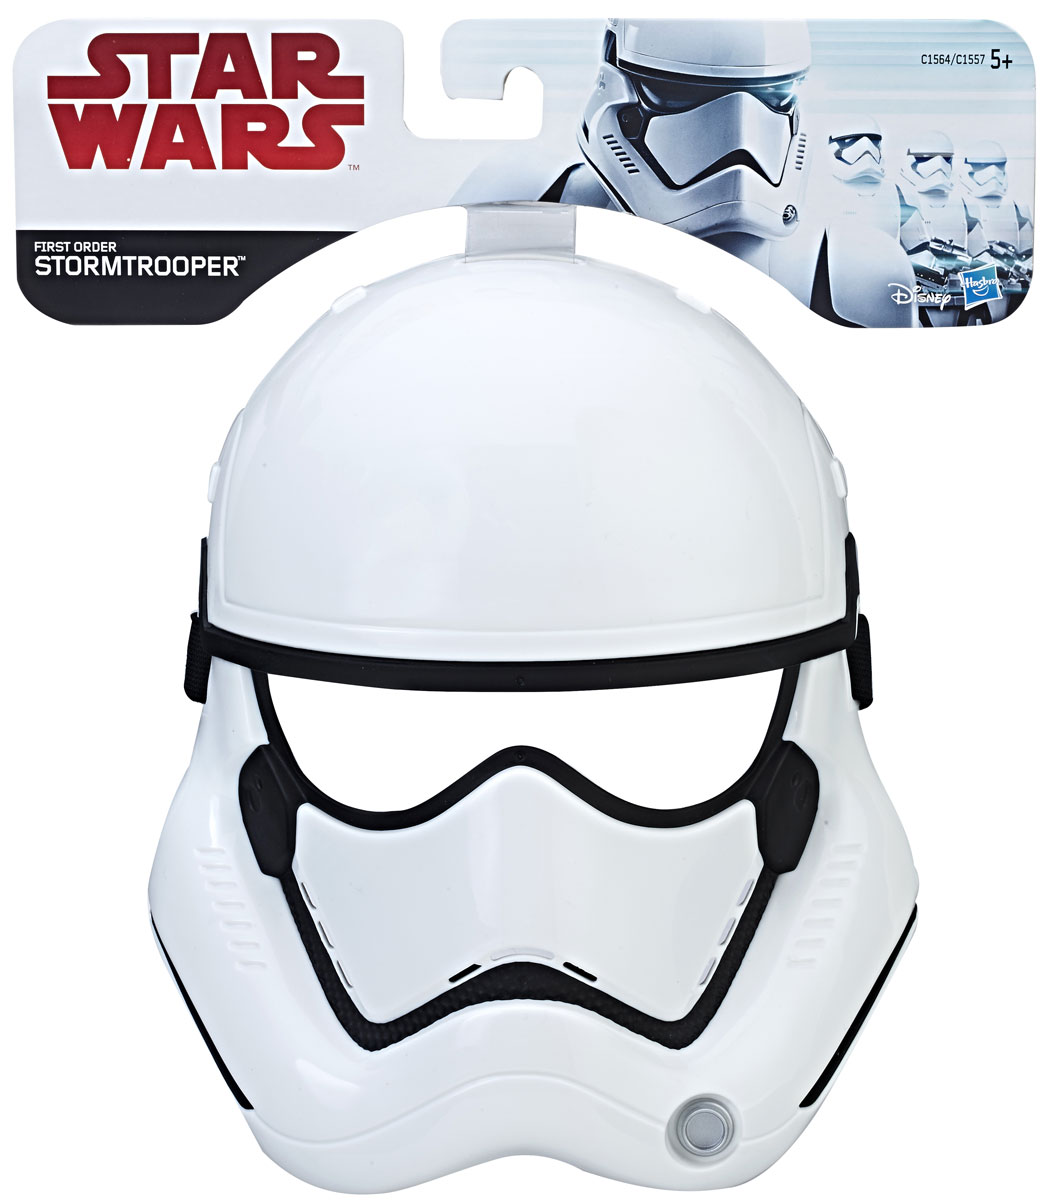 Star Wars Маска First Order Stormtrooper C1564